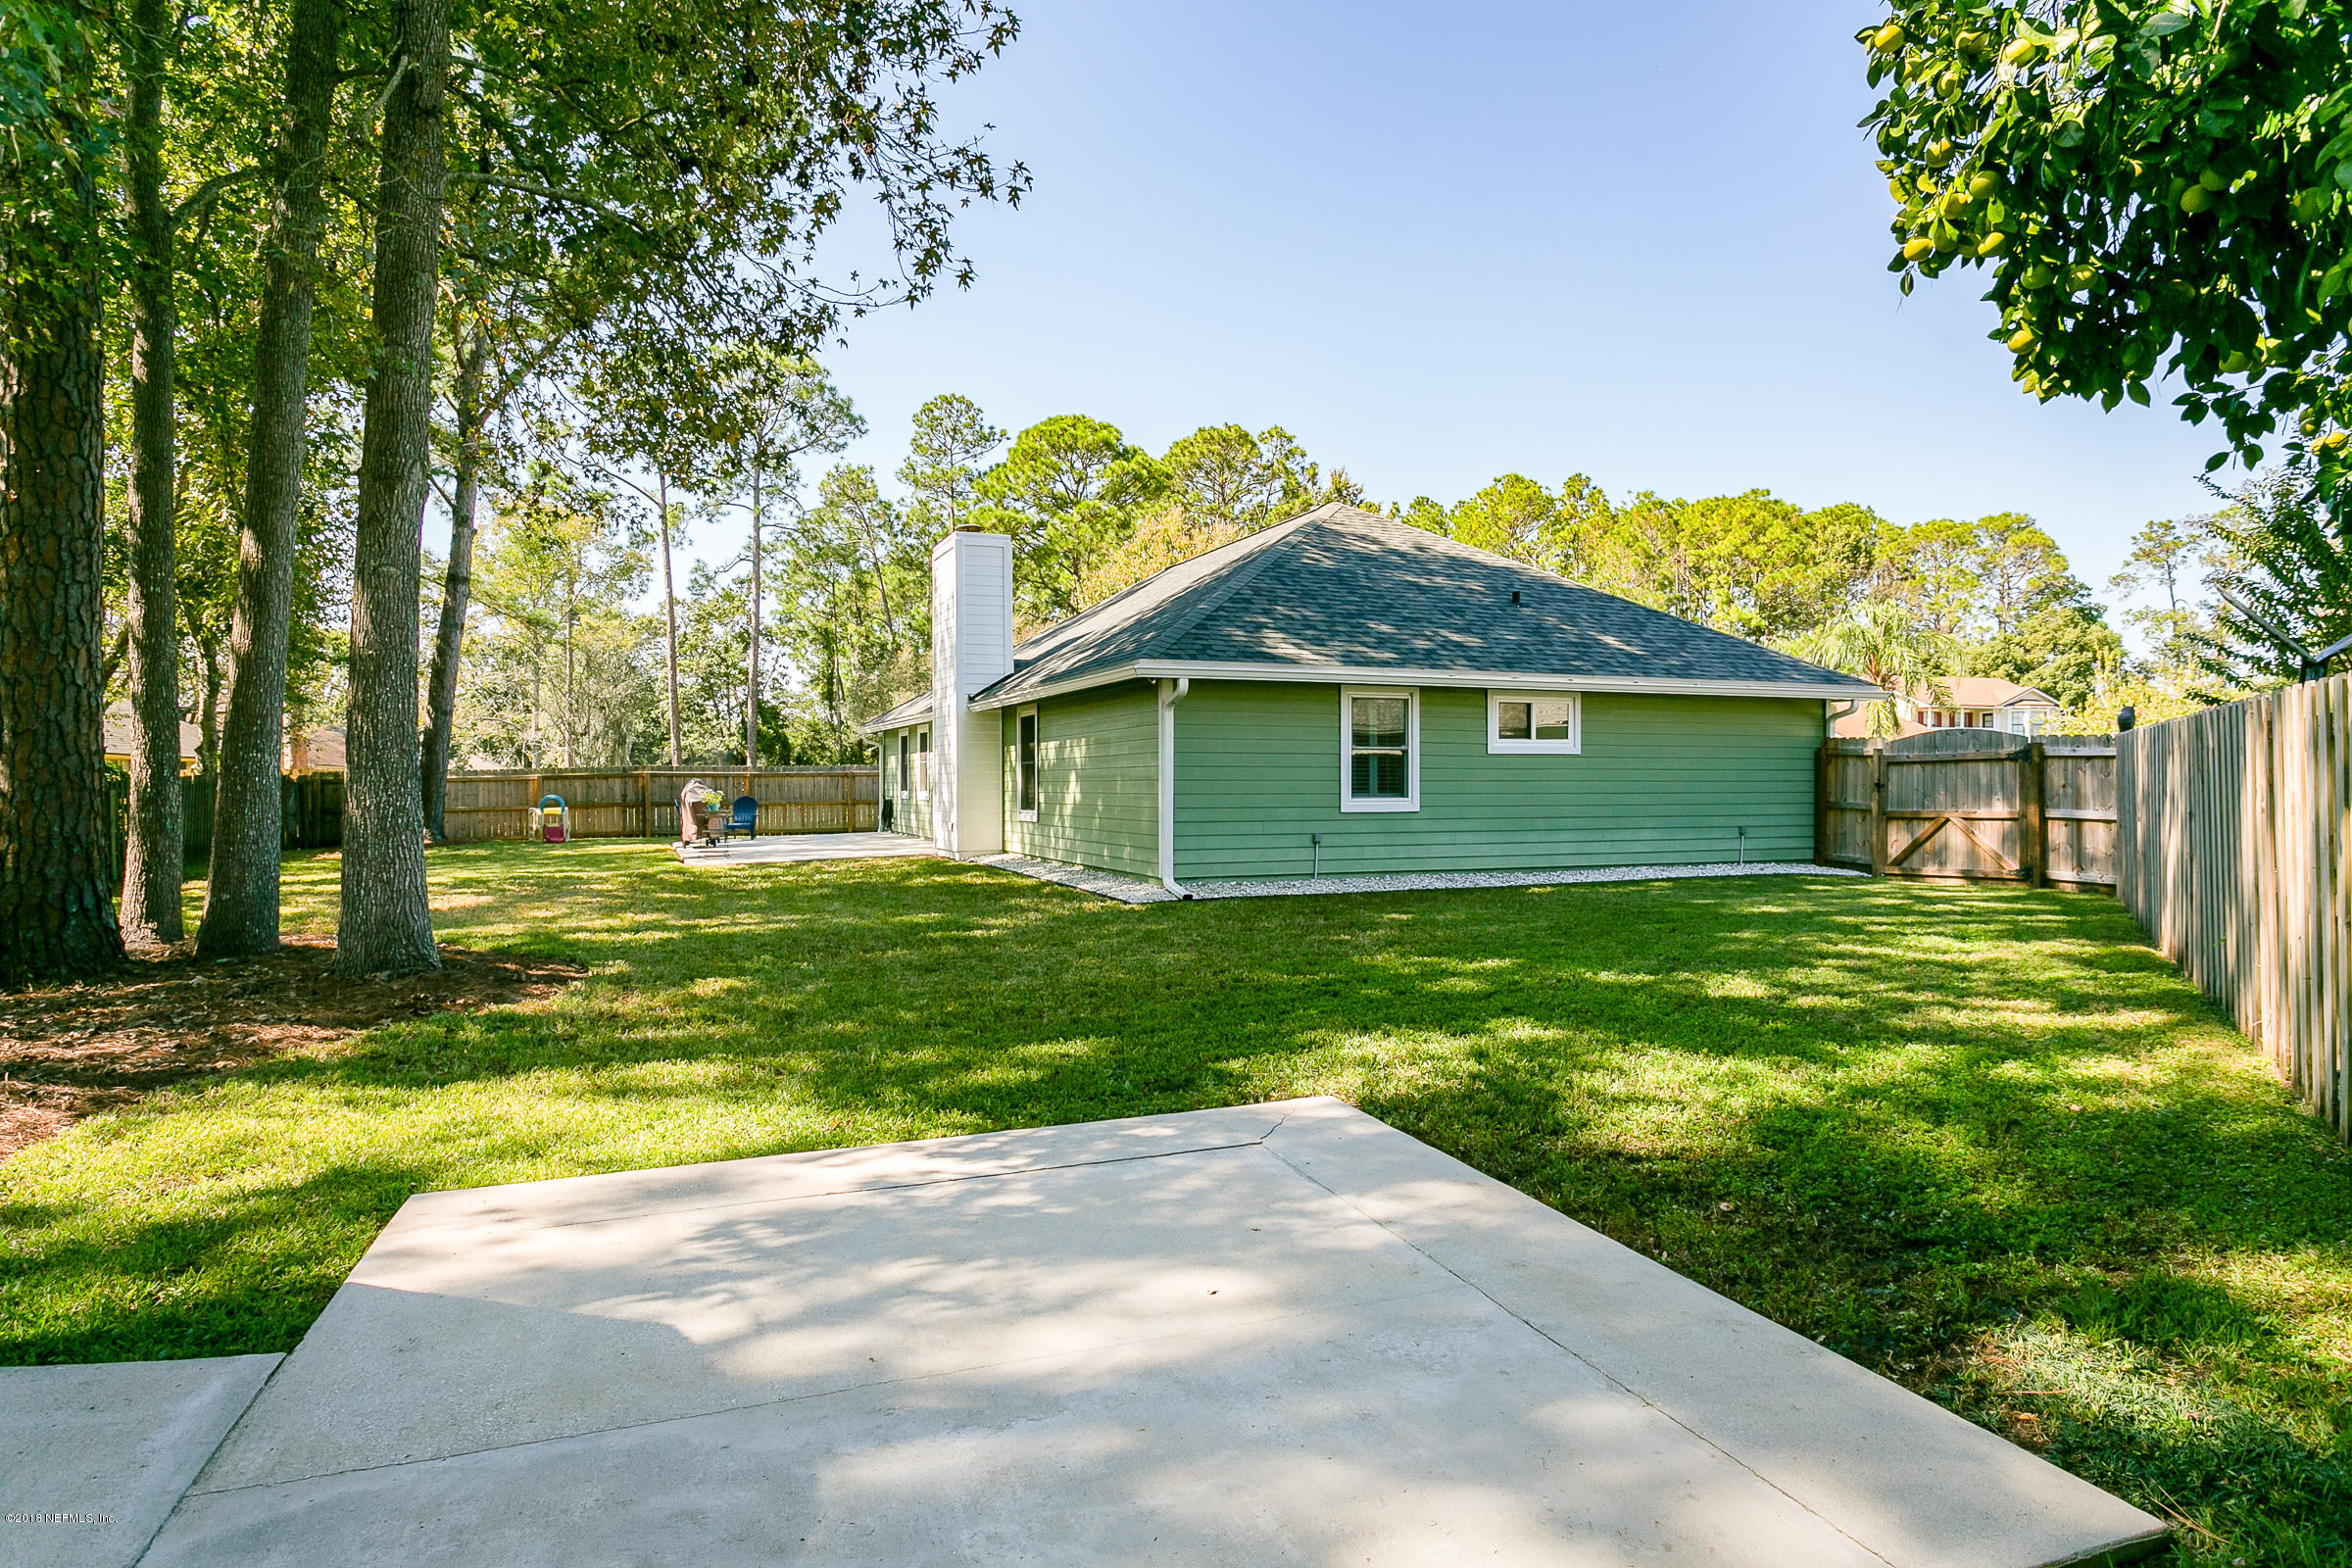 1701 TALL TIMBER, FLEMING ISLAND, FLORIDA 32003, 3 Bedrooms Bedrooms, ,2 BathroomsBathrooms,Residential - single family,For sale,TALL TIMBER,964820